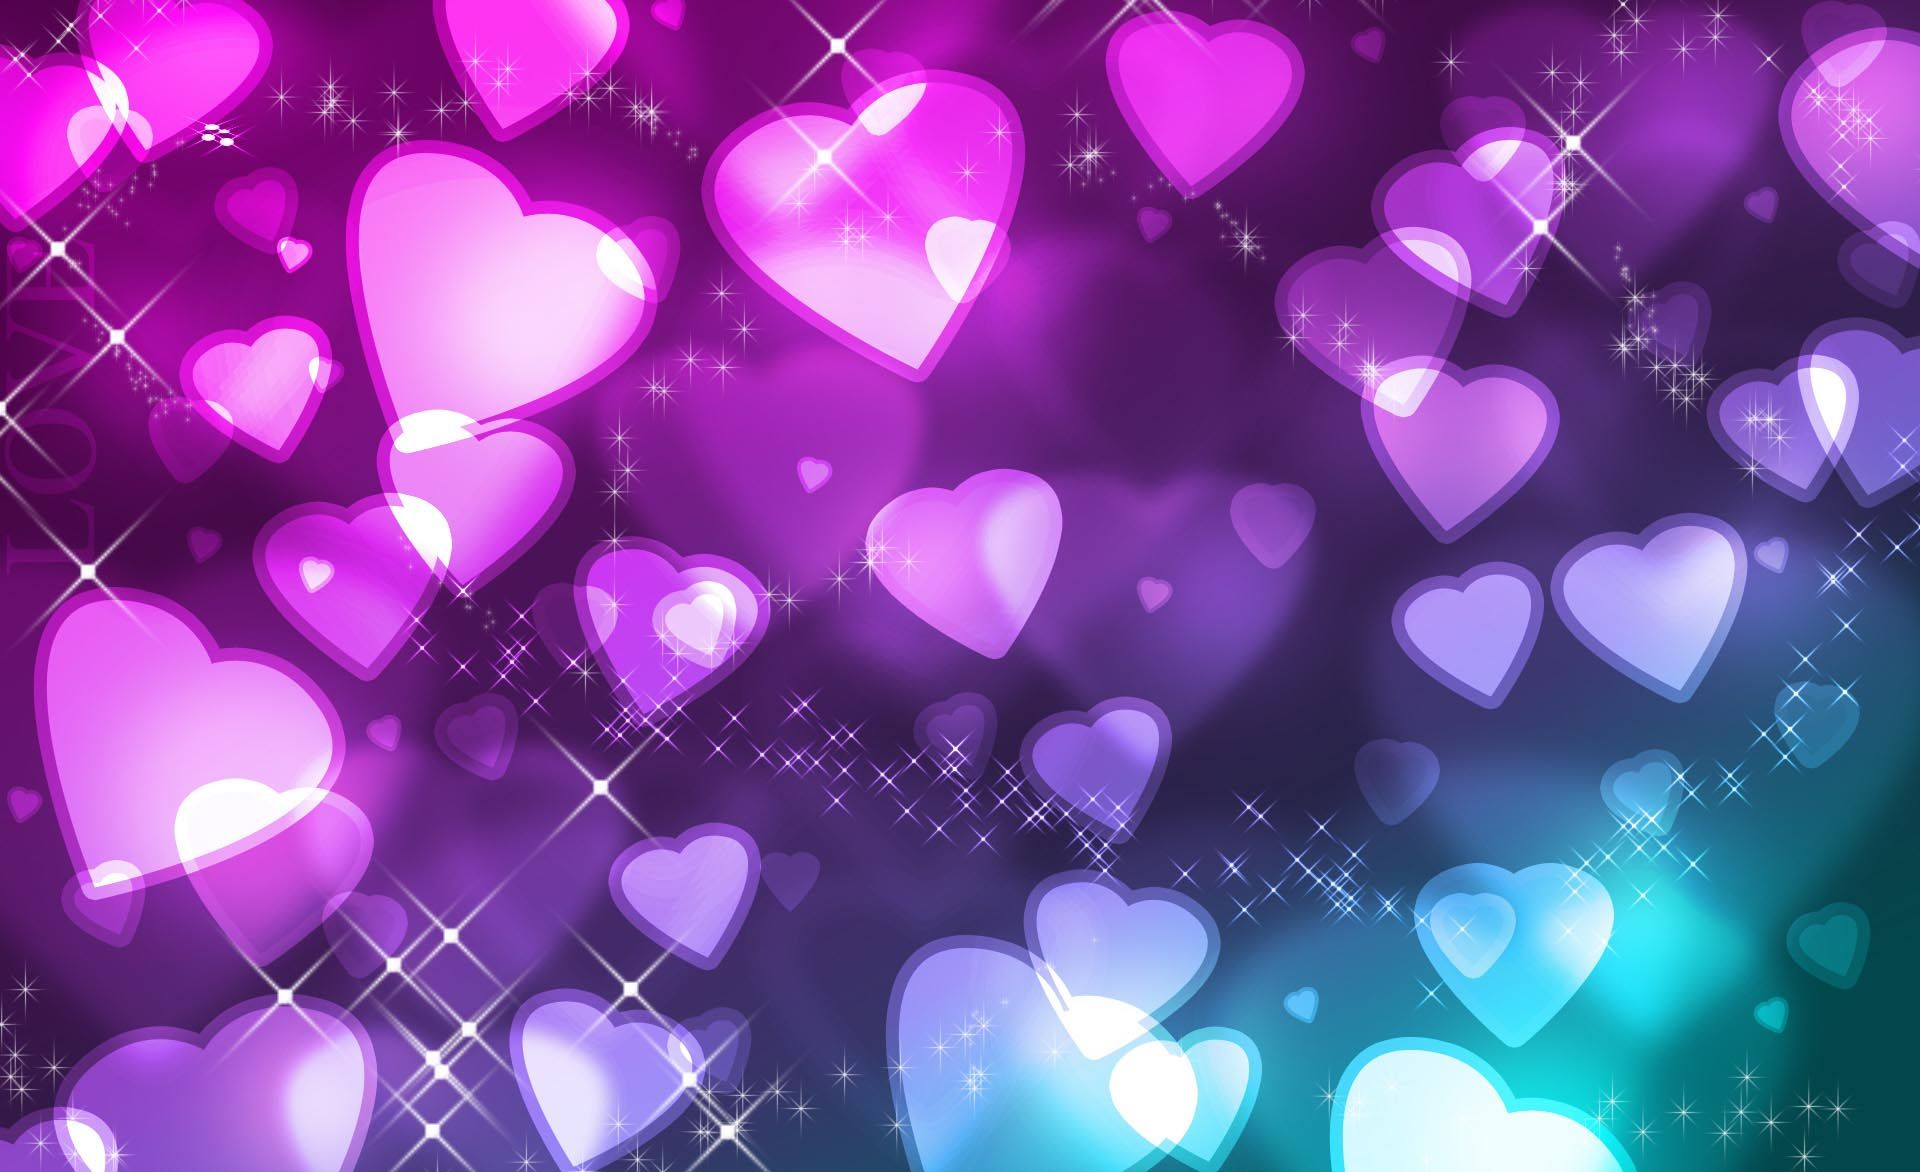 d love heart wallpaper wallpapers for free download about